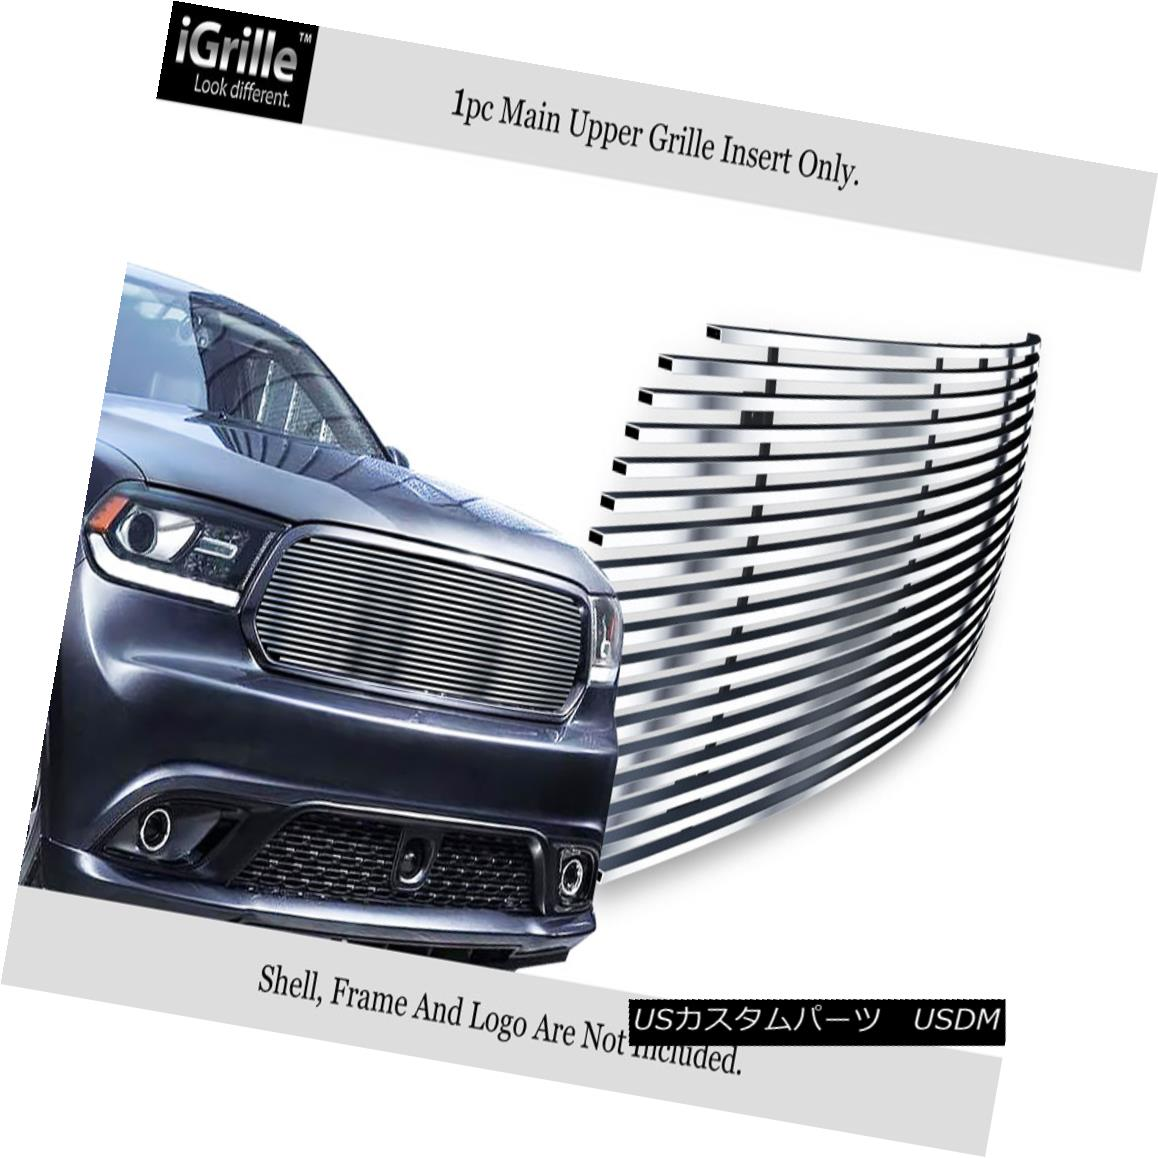 グリル For 2014-2018 Dodge Durango Stainless Steel Billet Grille 2014-2018 Dodge Durangoステンレス鋼ビレットグリル